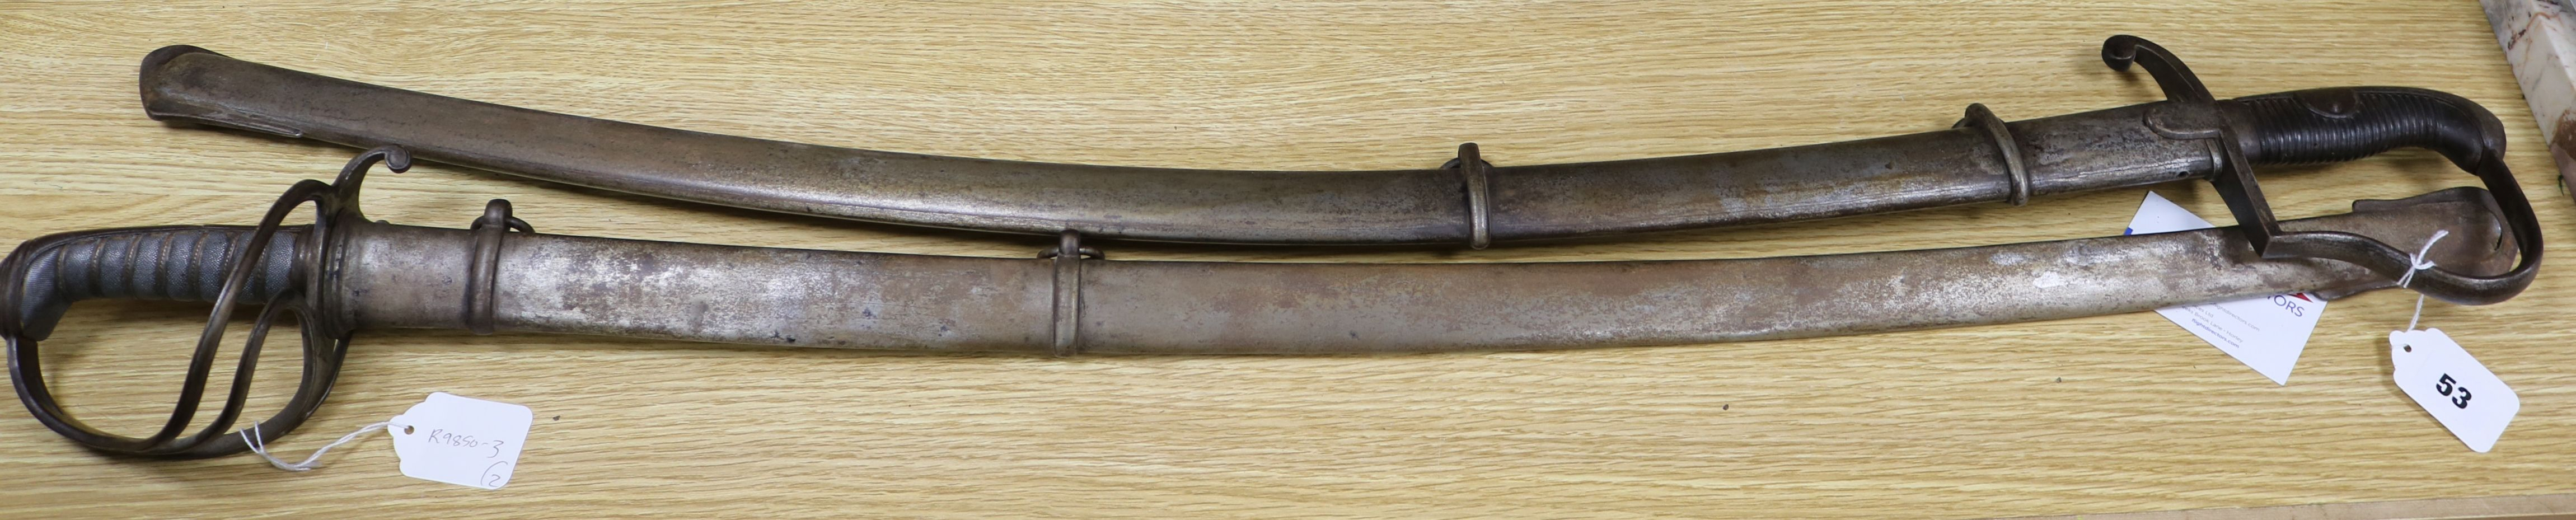 Lot 53 - A Victorian sabre with etched blade and a mid 19th century sabre, both with scabbards